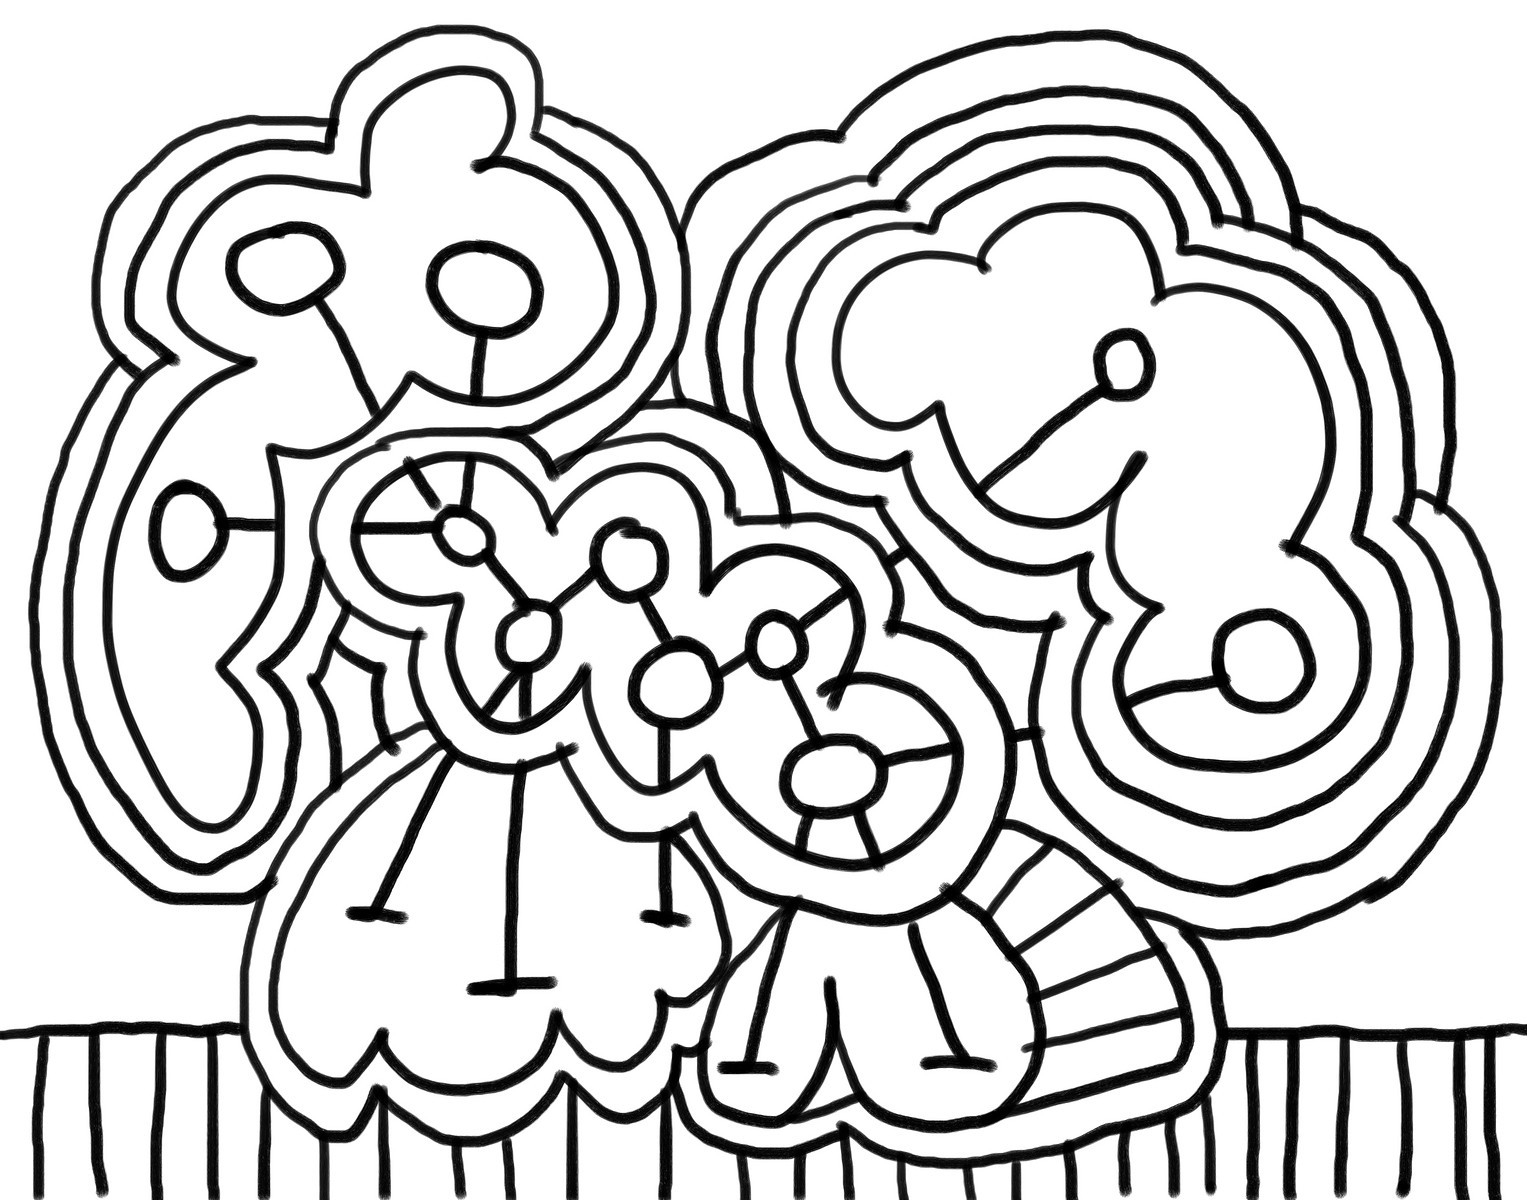 Free Abstract Coloring Pages Seekliza Printable Of Stress Relief Coloring Pages Animals Funny Coloring Pages Printable